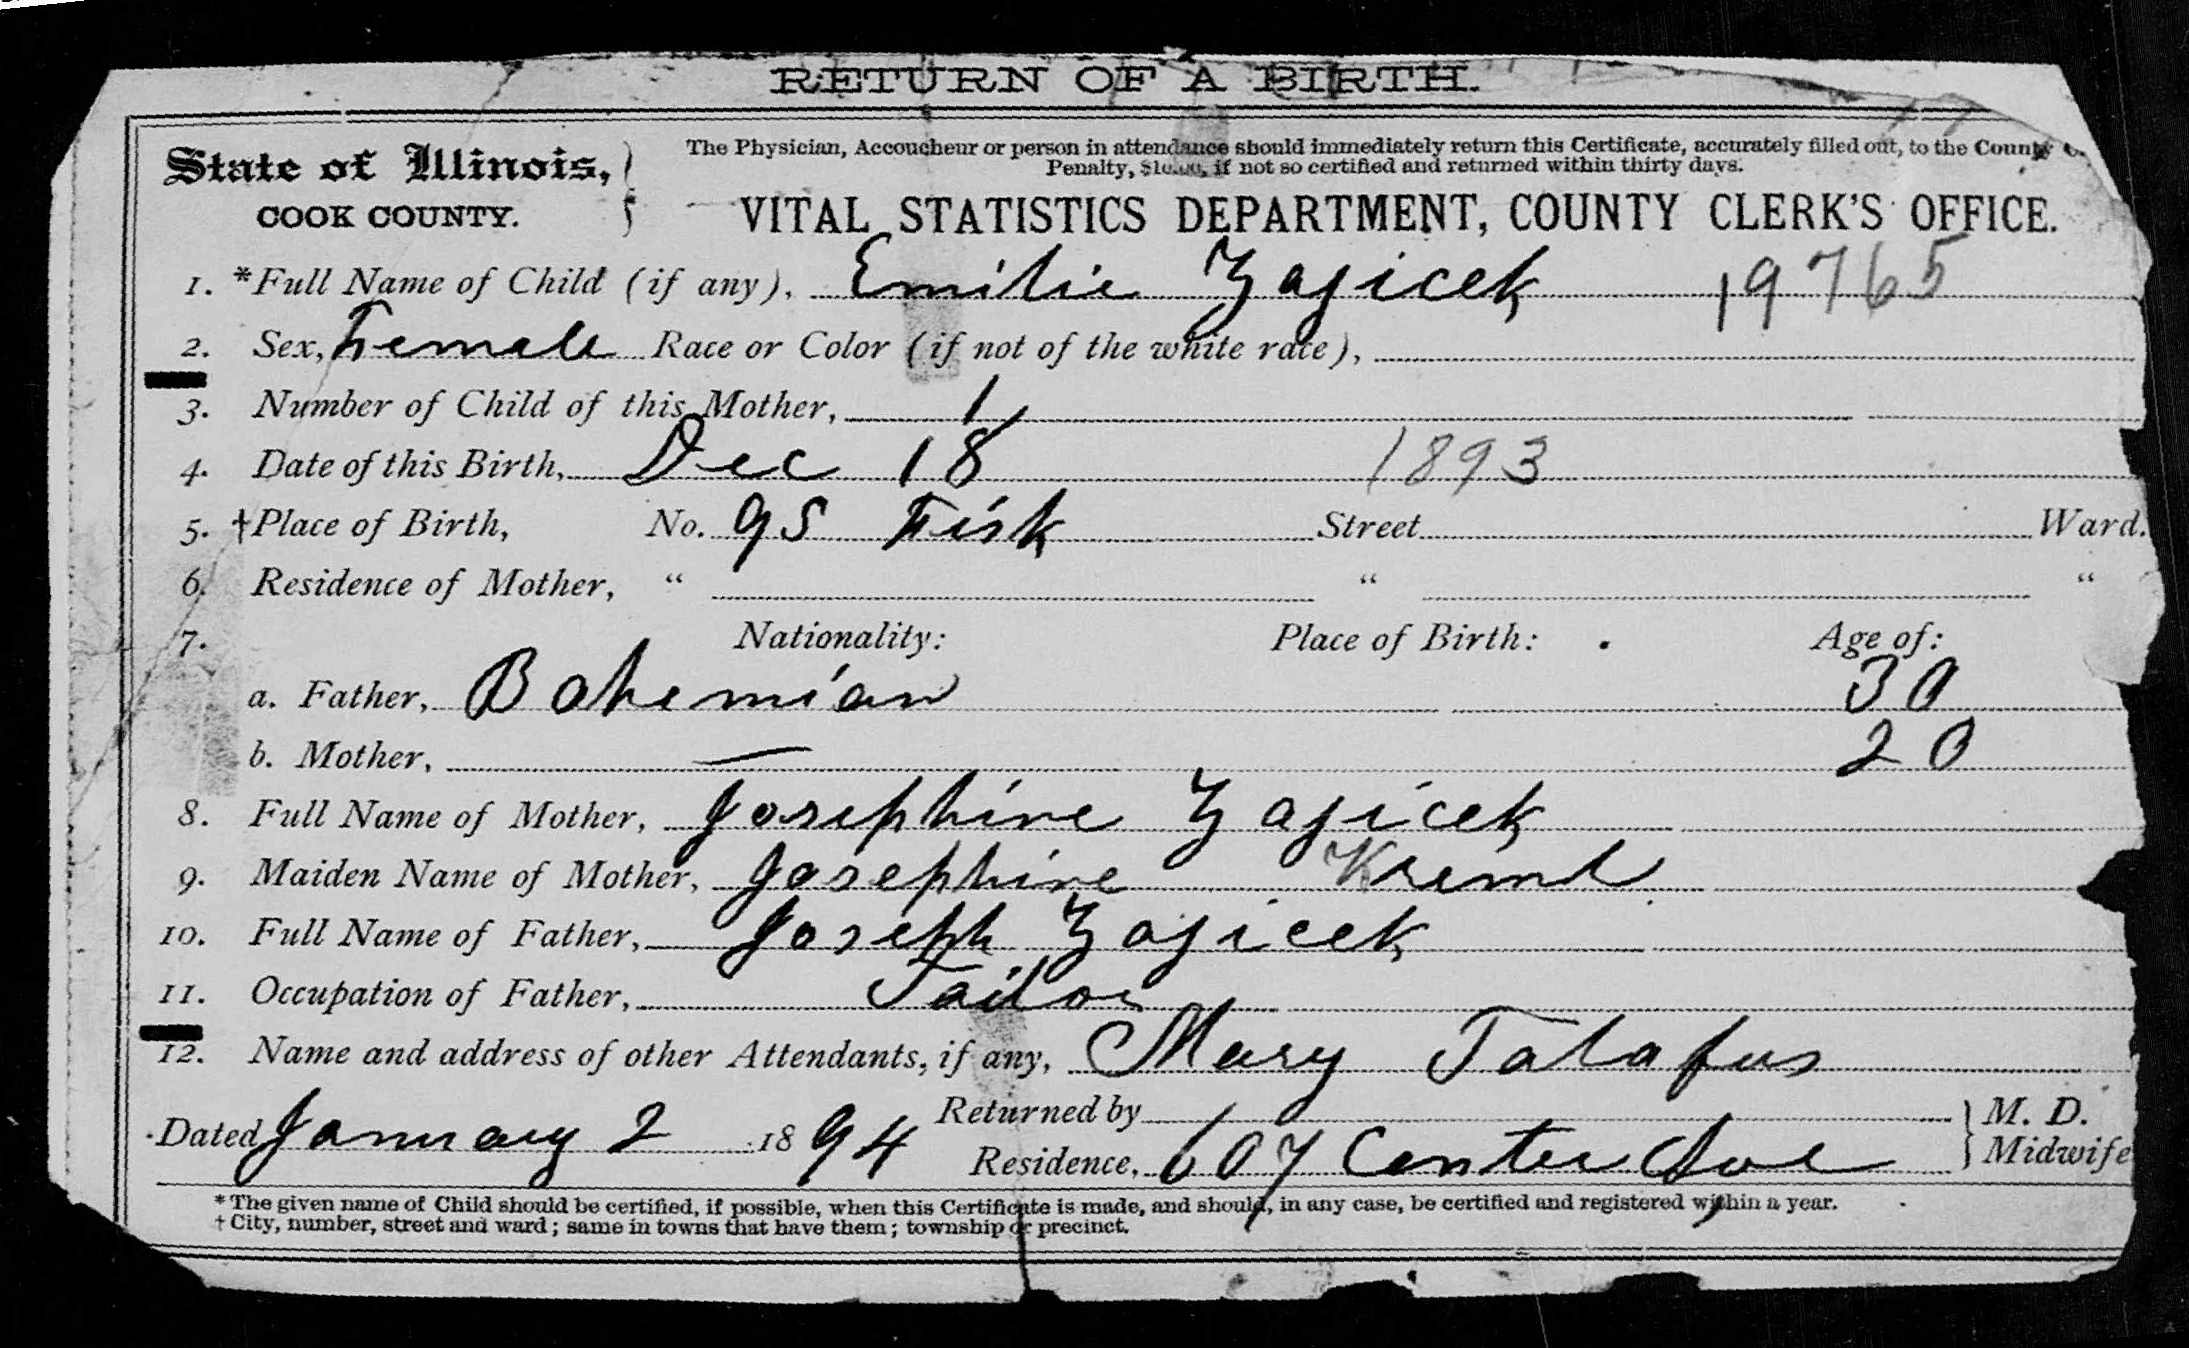 Documents Birth Certificate For Emily Zajicek 1893 Riemer And